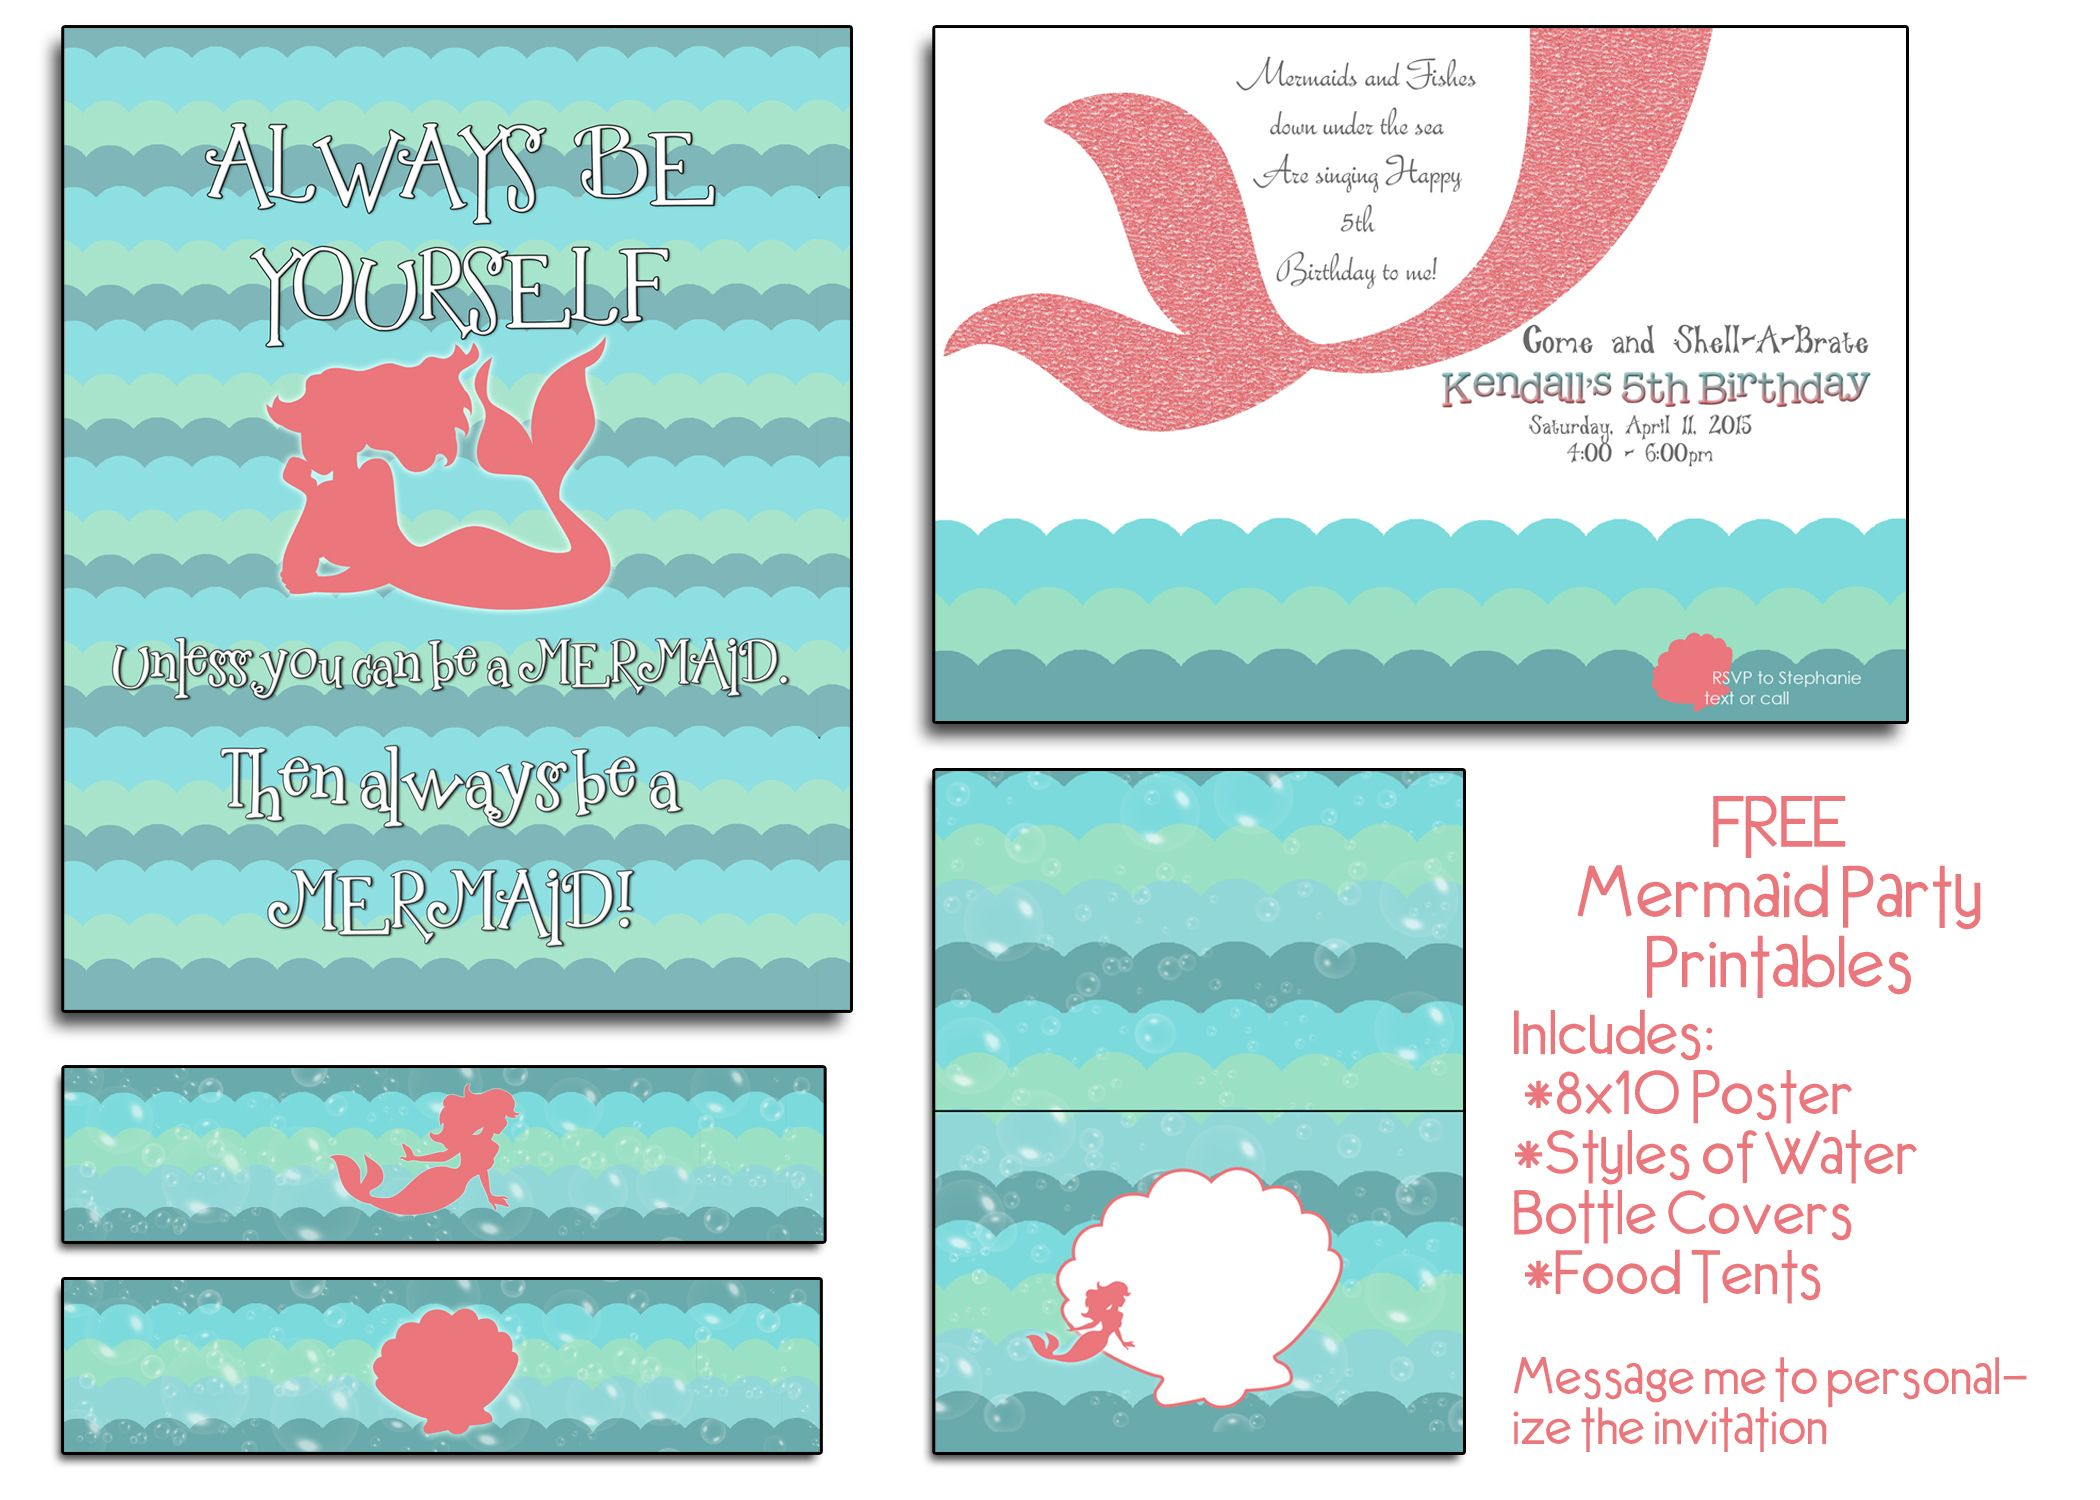 photograph regarding Free Printable Food Labels for Party known as No cost Mermaid Occasion Printables